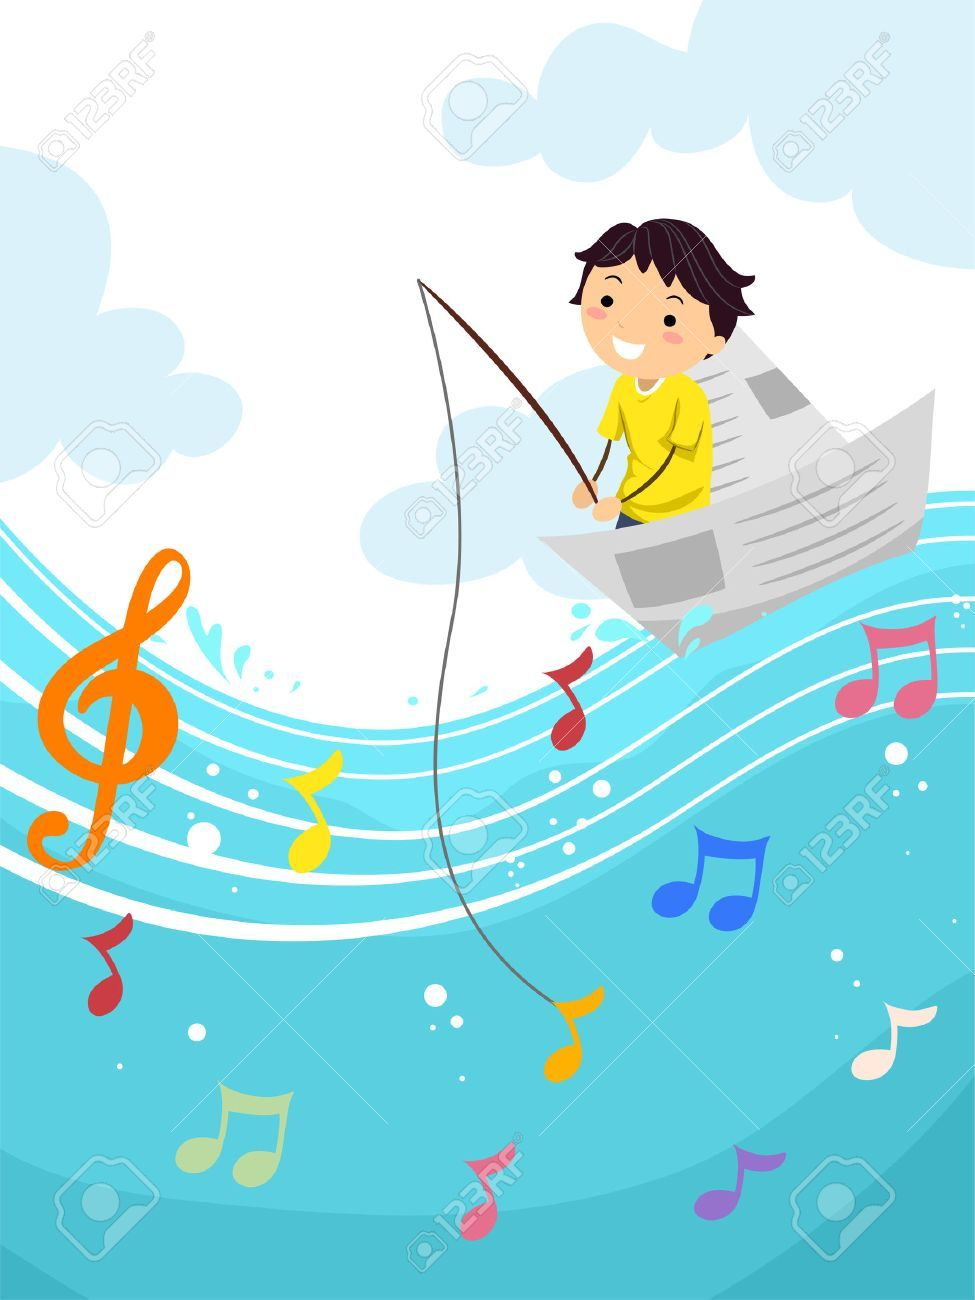 Stickman Illustration Of A Kid Boy Fishing For A Musical Note Aff Kid Illustration Stickman Boy Note Boy Fishing Art Inspiration Art